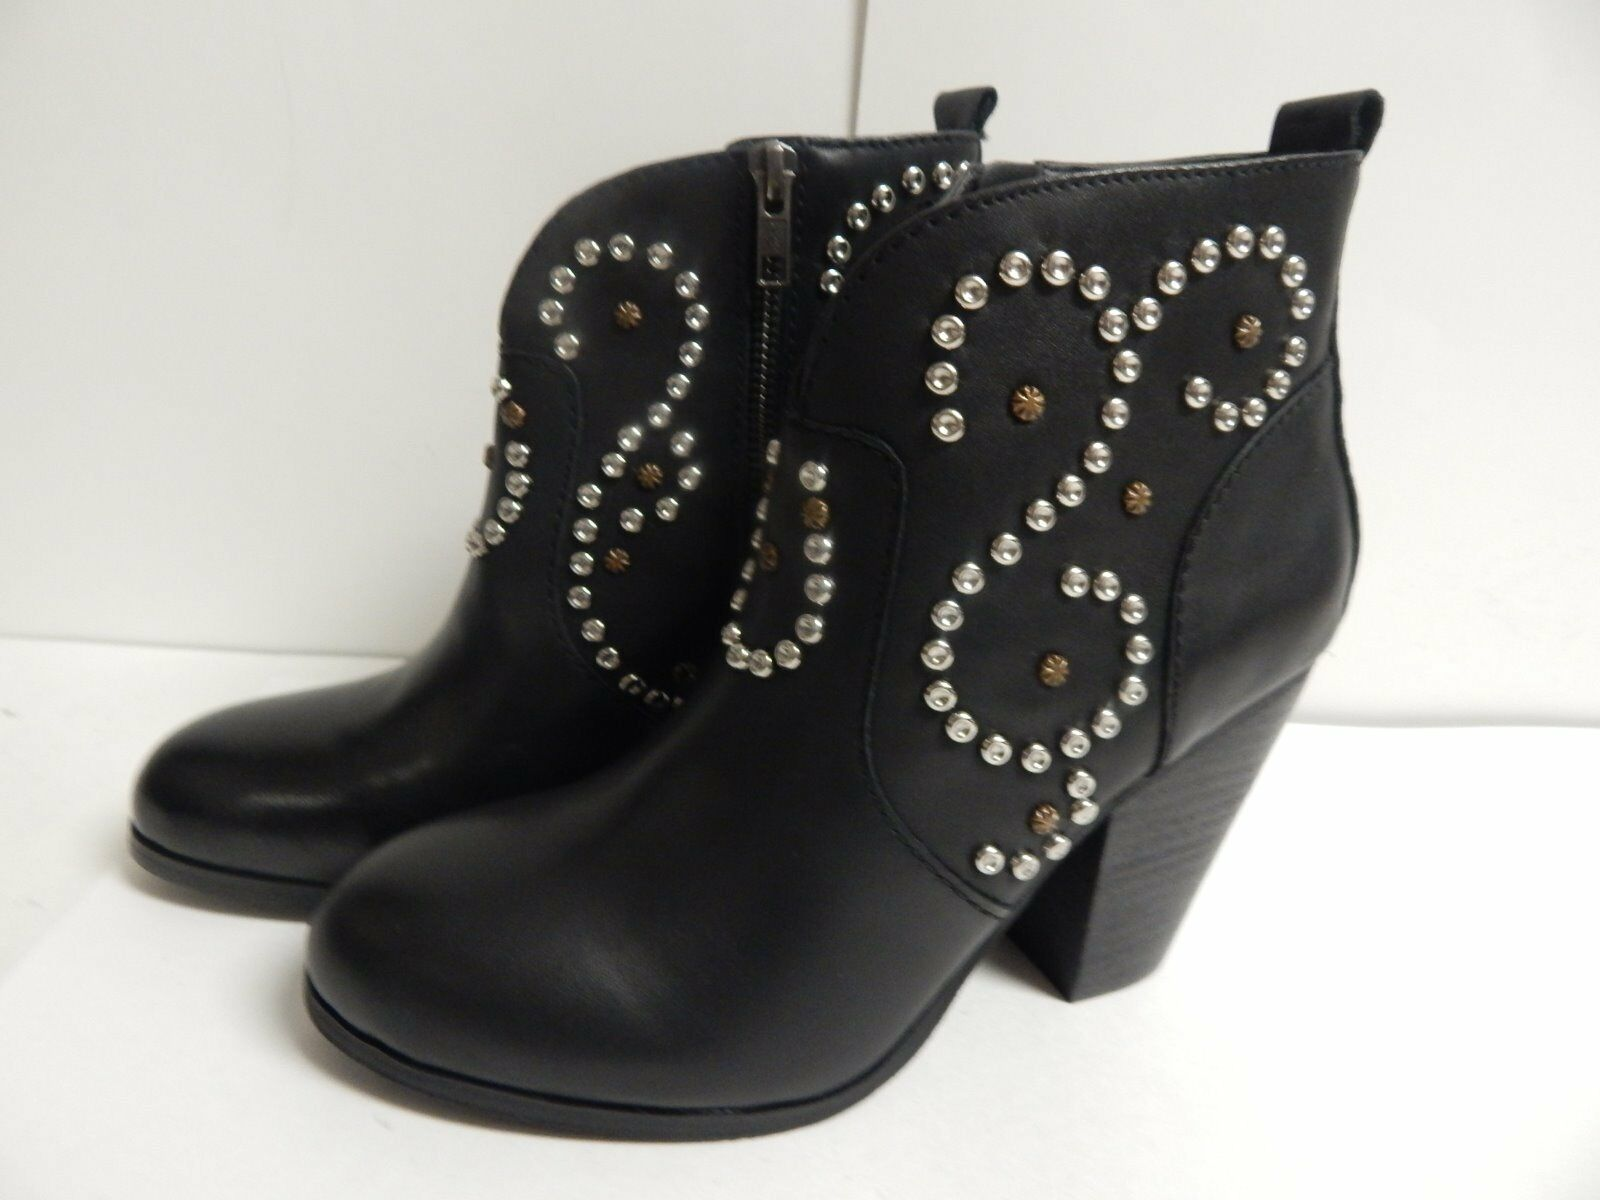 Steve Madden Awsum Ankle Bootie 9 M Black Leather  New With Box